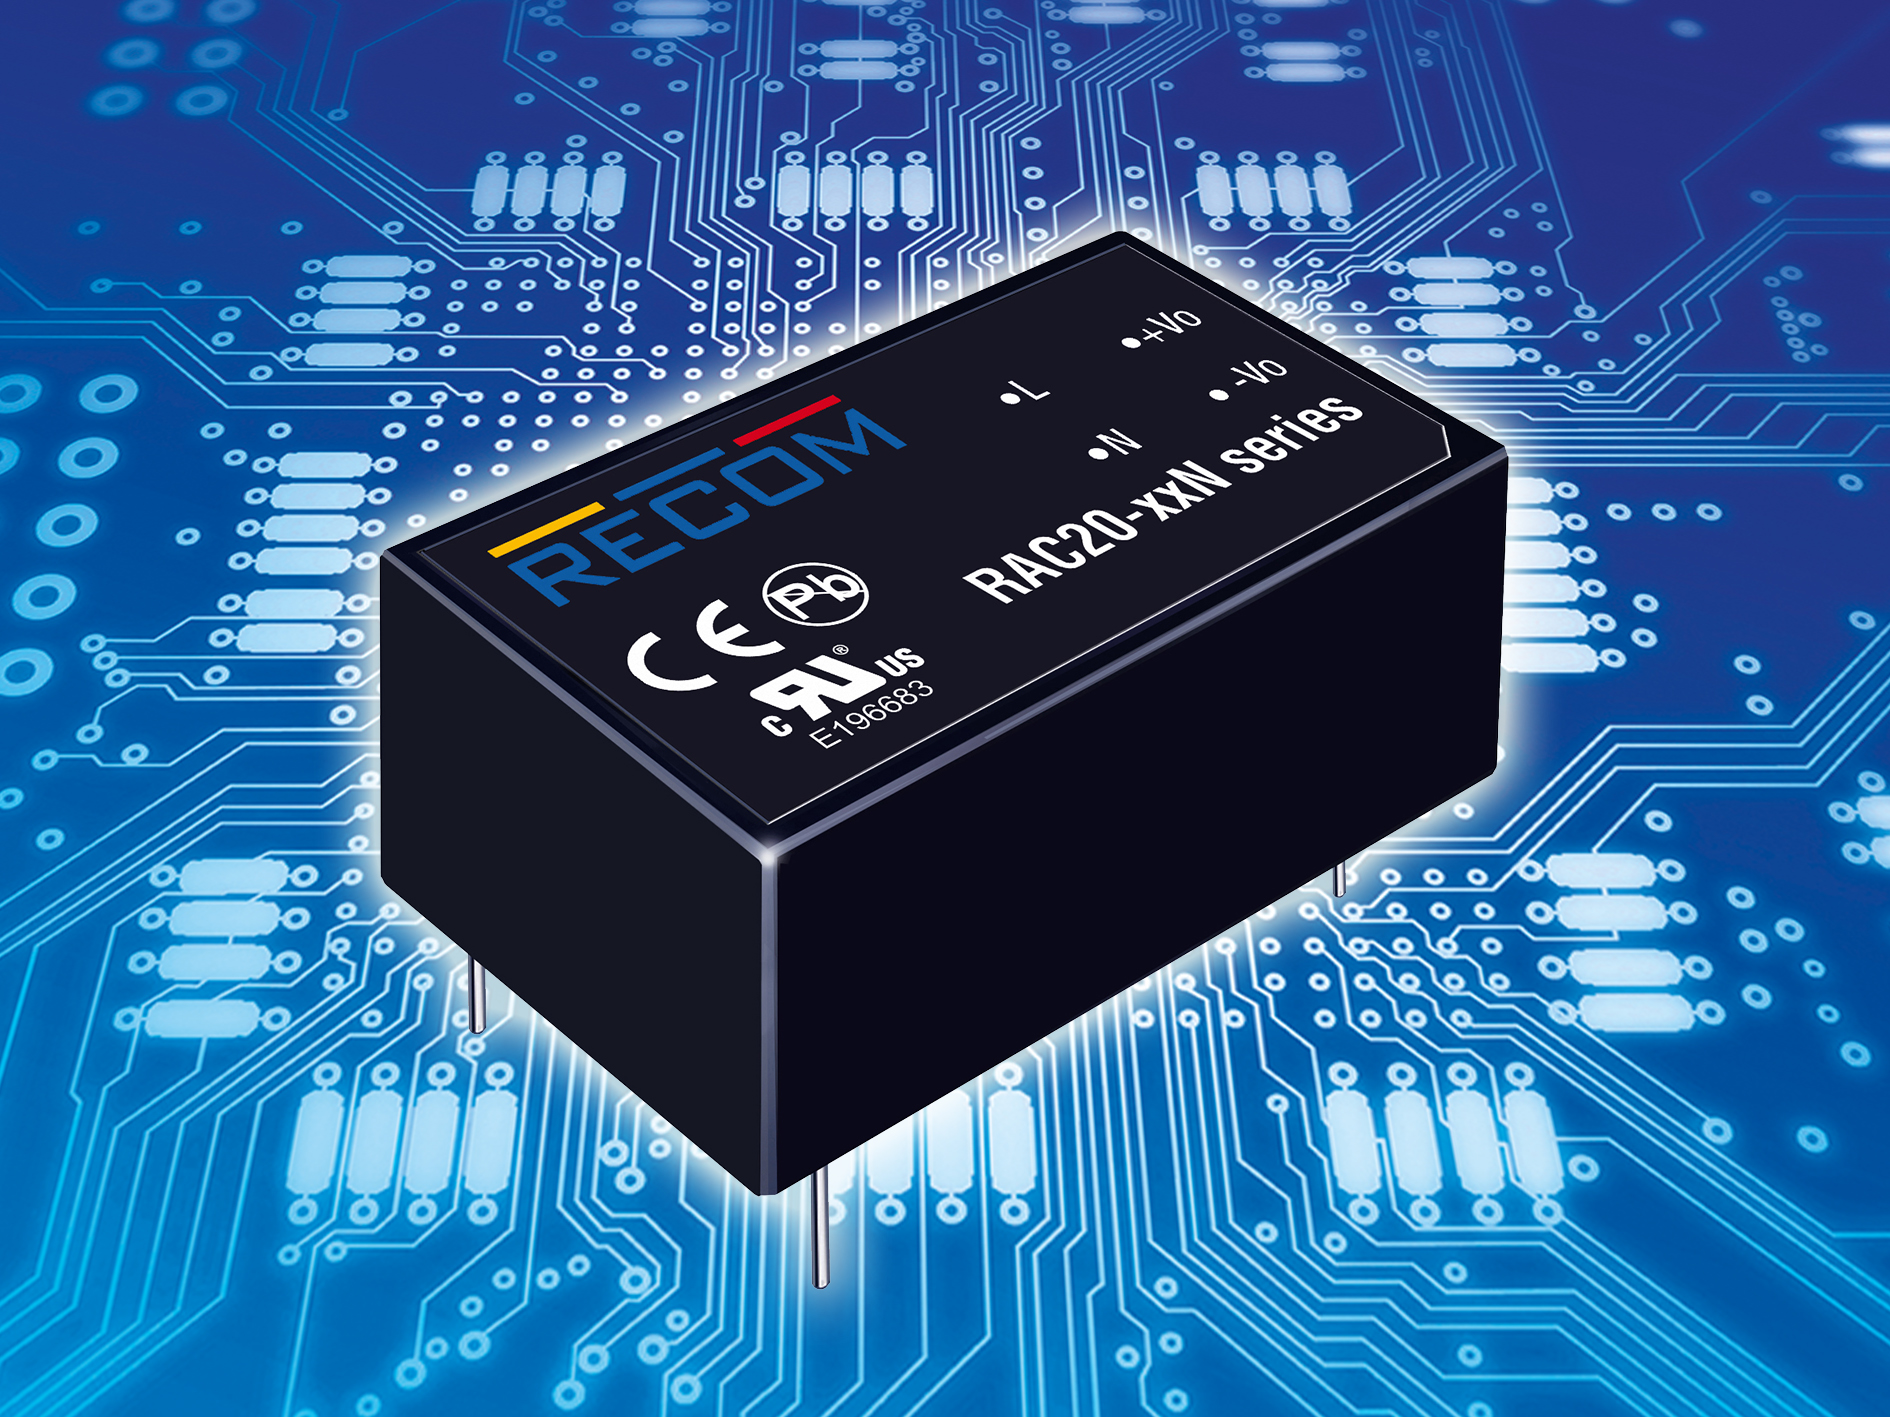 Recom Rac20 N Ac Dc Converter In Modular Design For Mounting Circuit Onto Pcbs